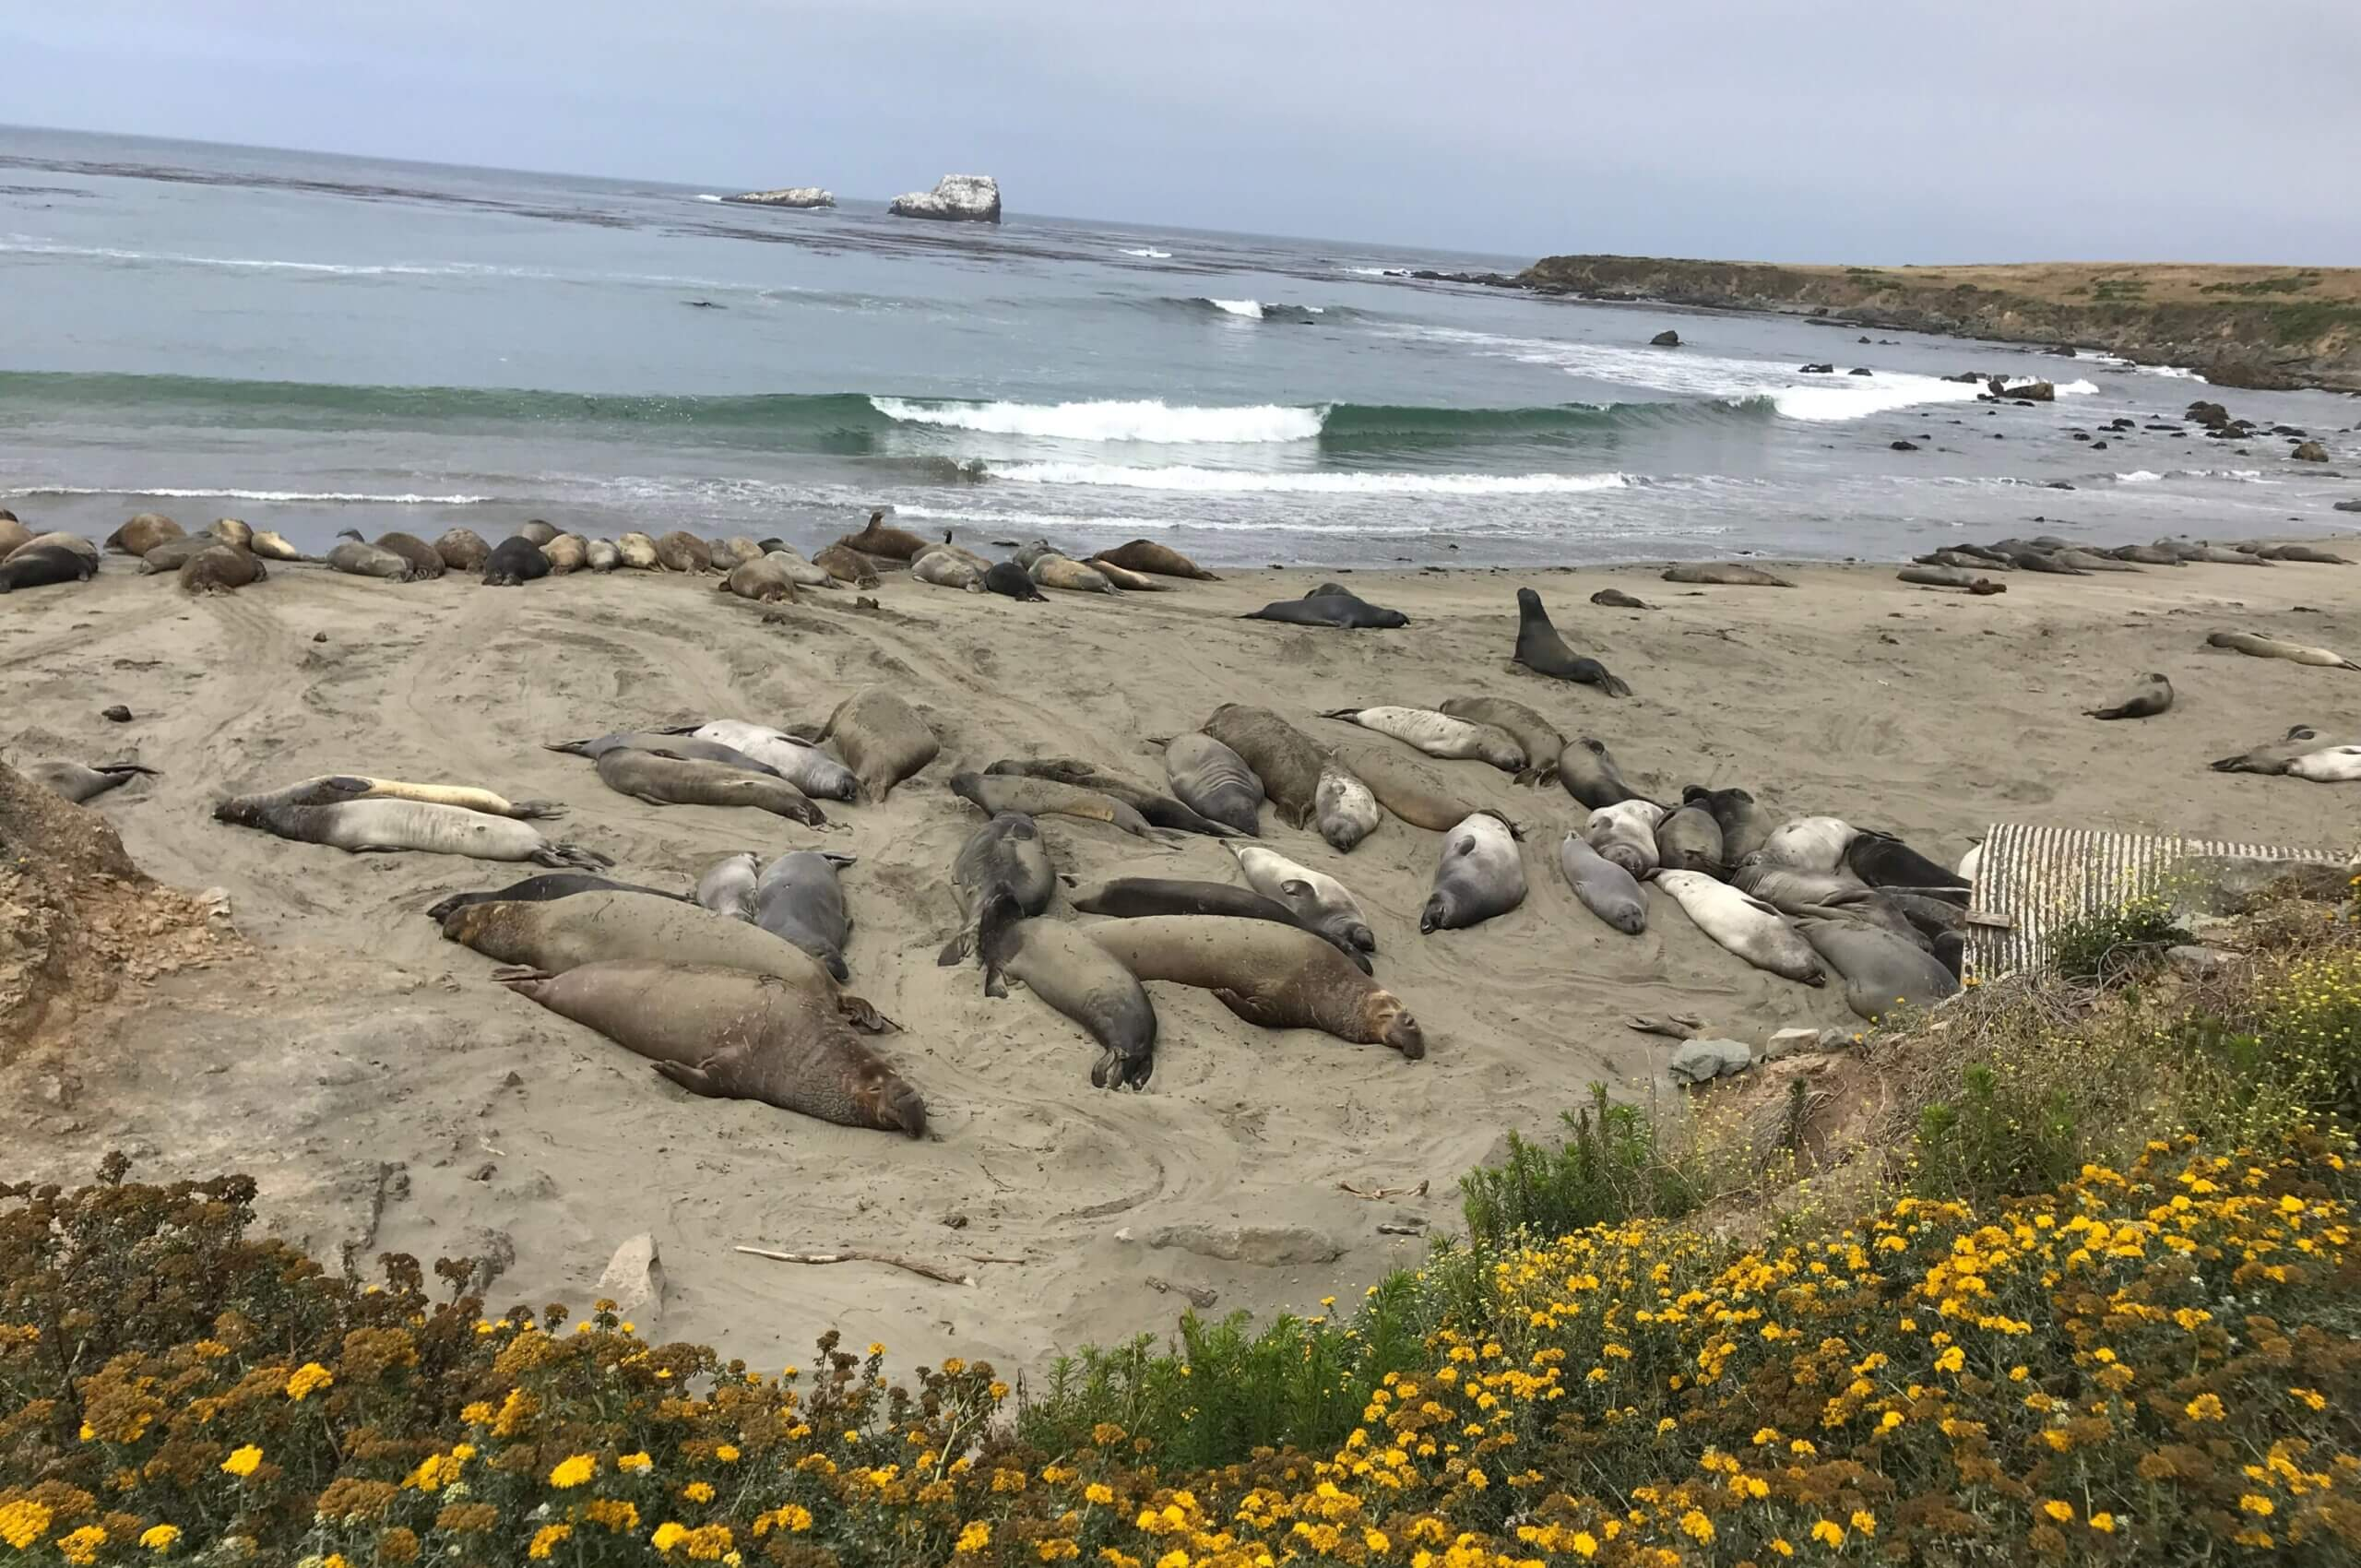 Hot Spots to See Wildlife in California